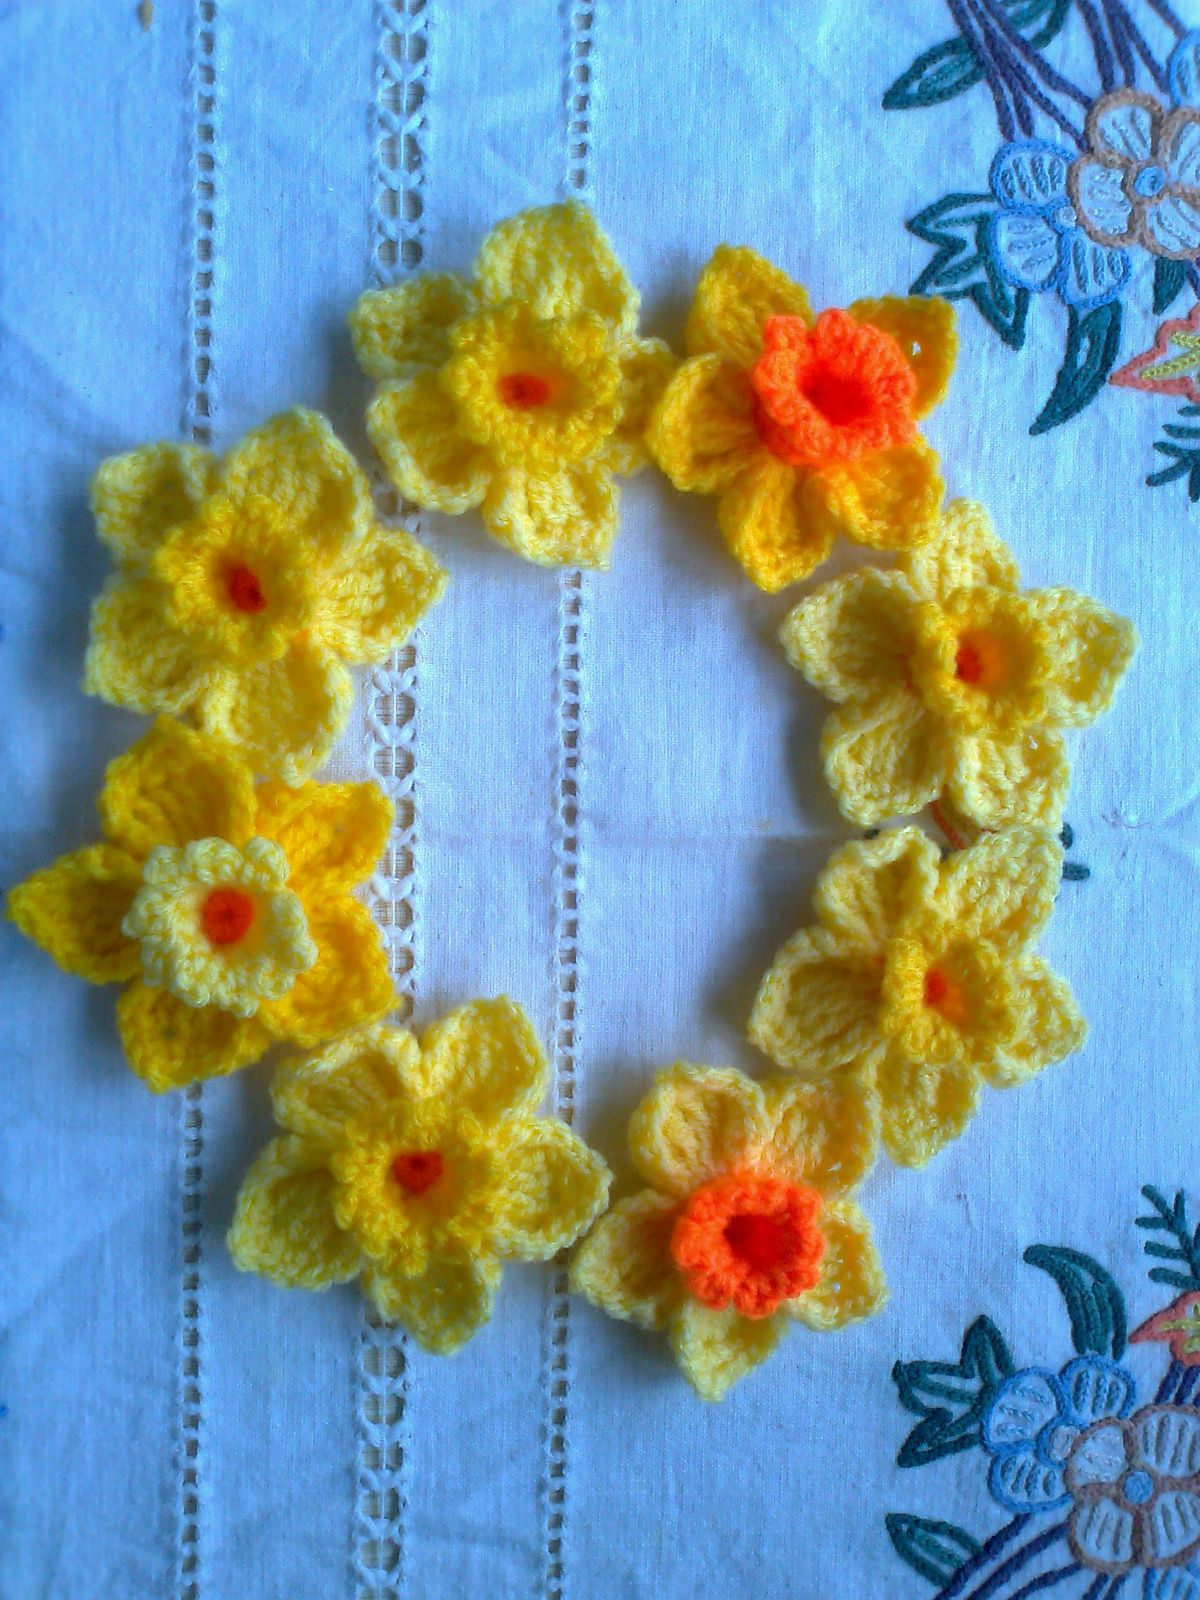 Ravelry Daffodil Broochpin Pattern By Julie Kyle Projects To Try